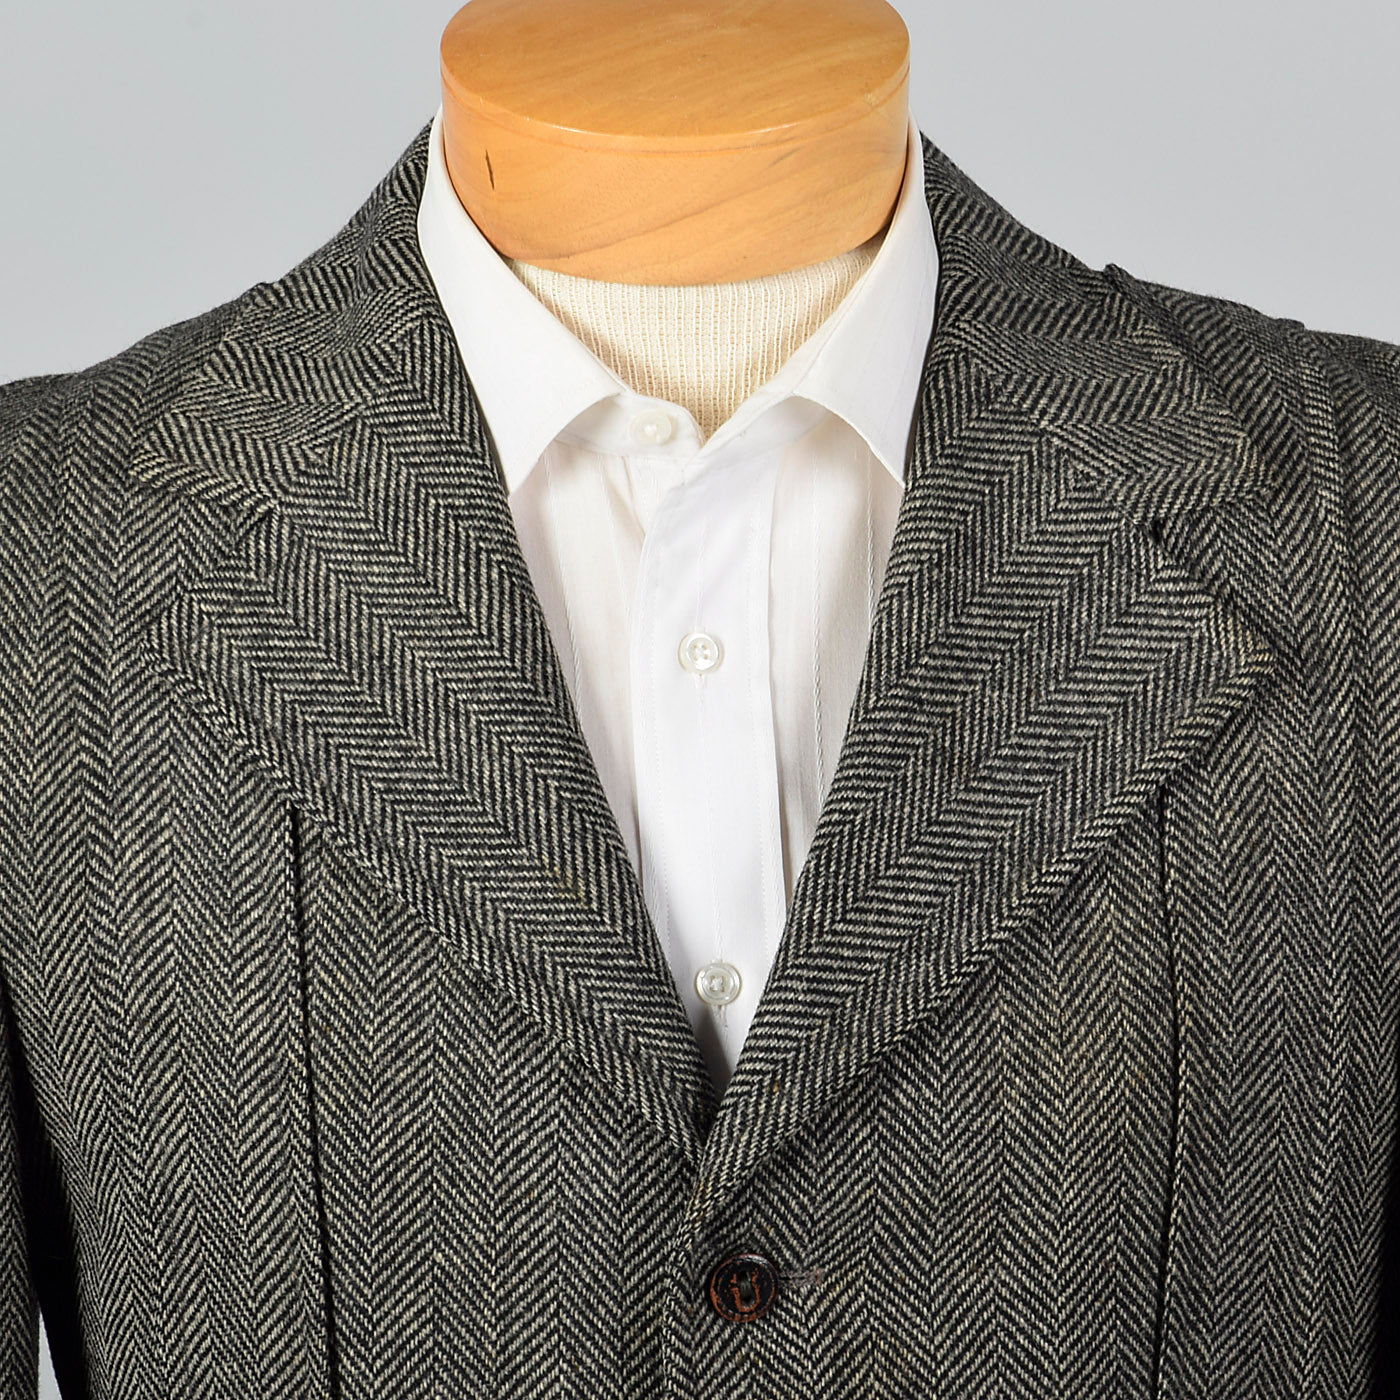 1970s Mens Herringbone Tweed Belted Norfolk Jacket